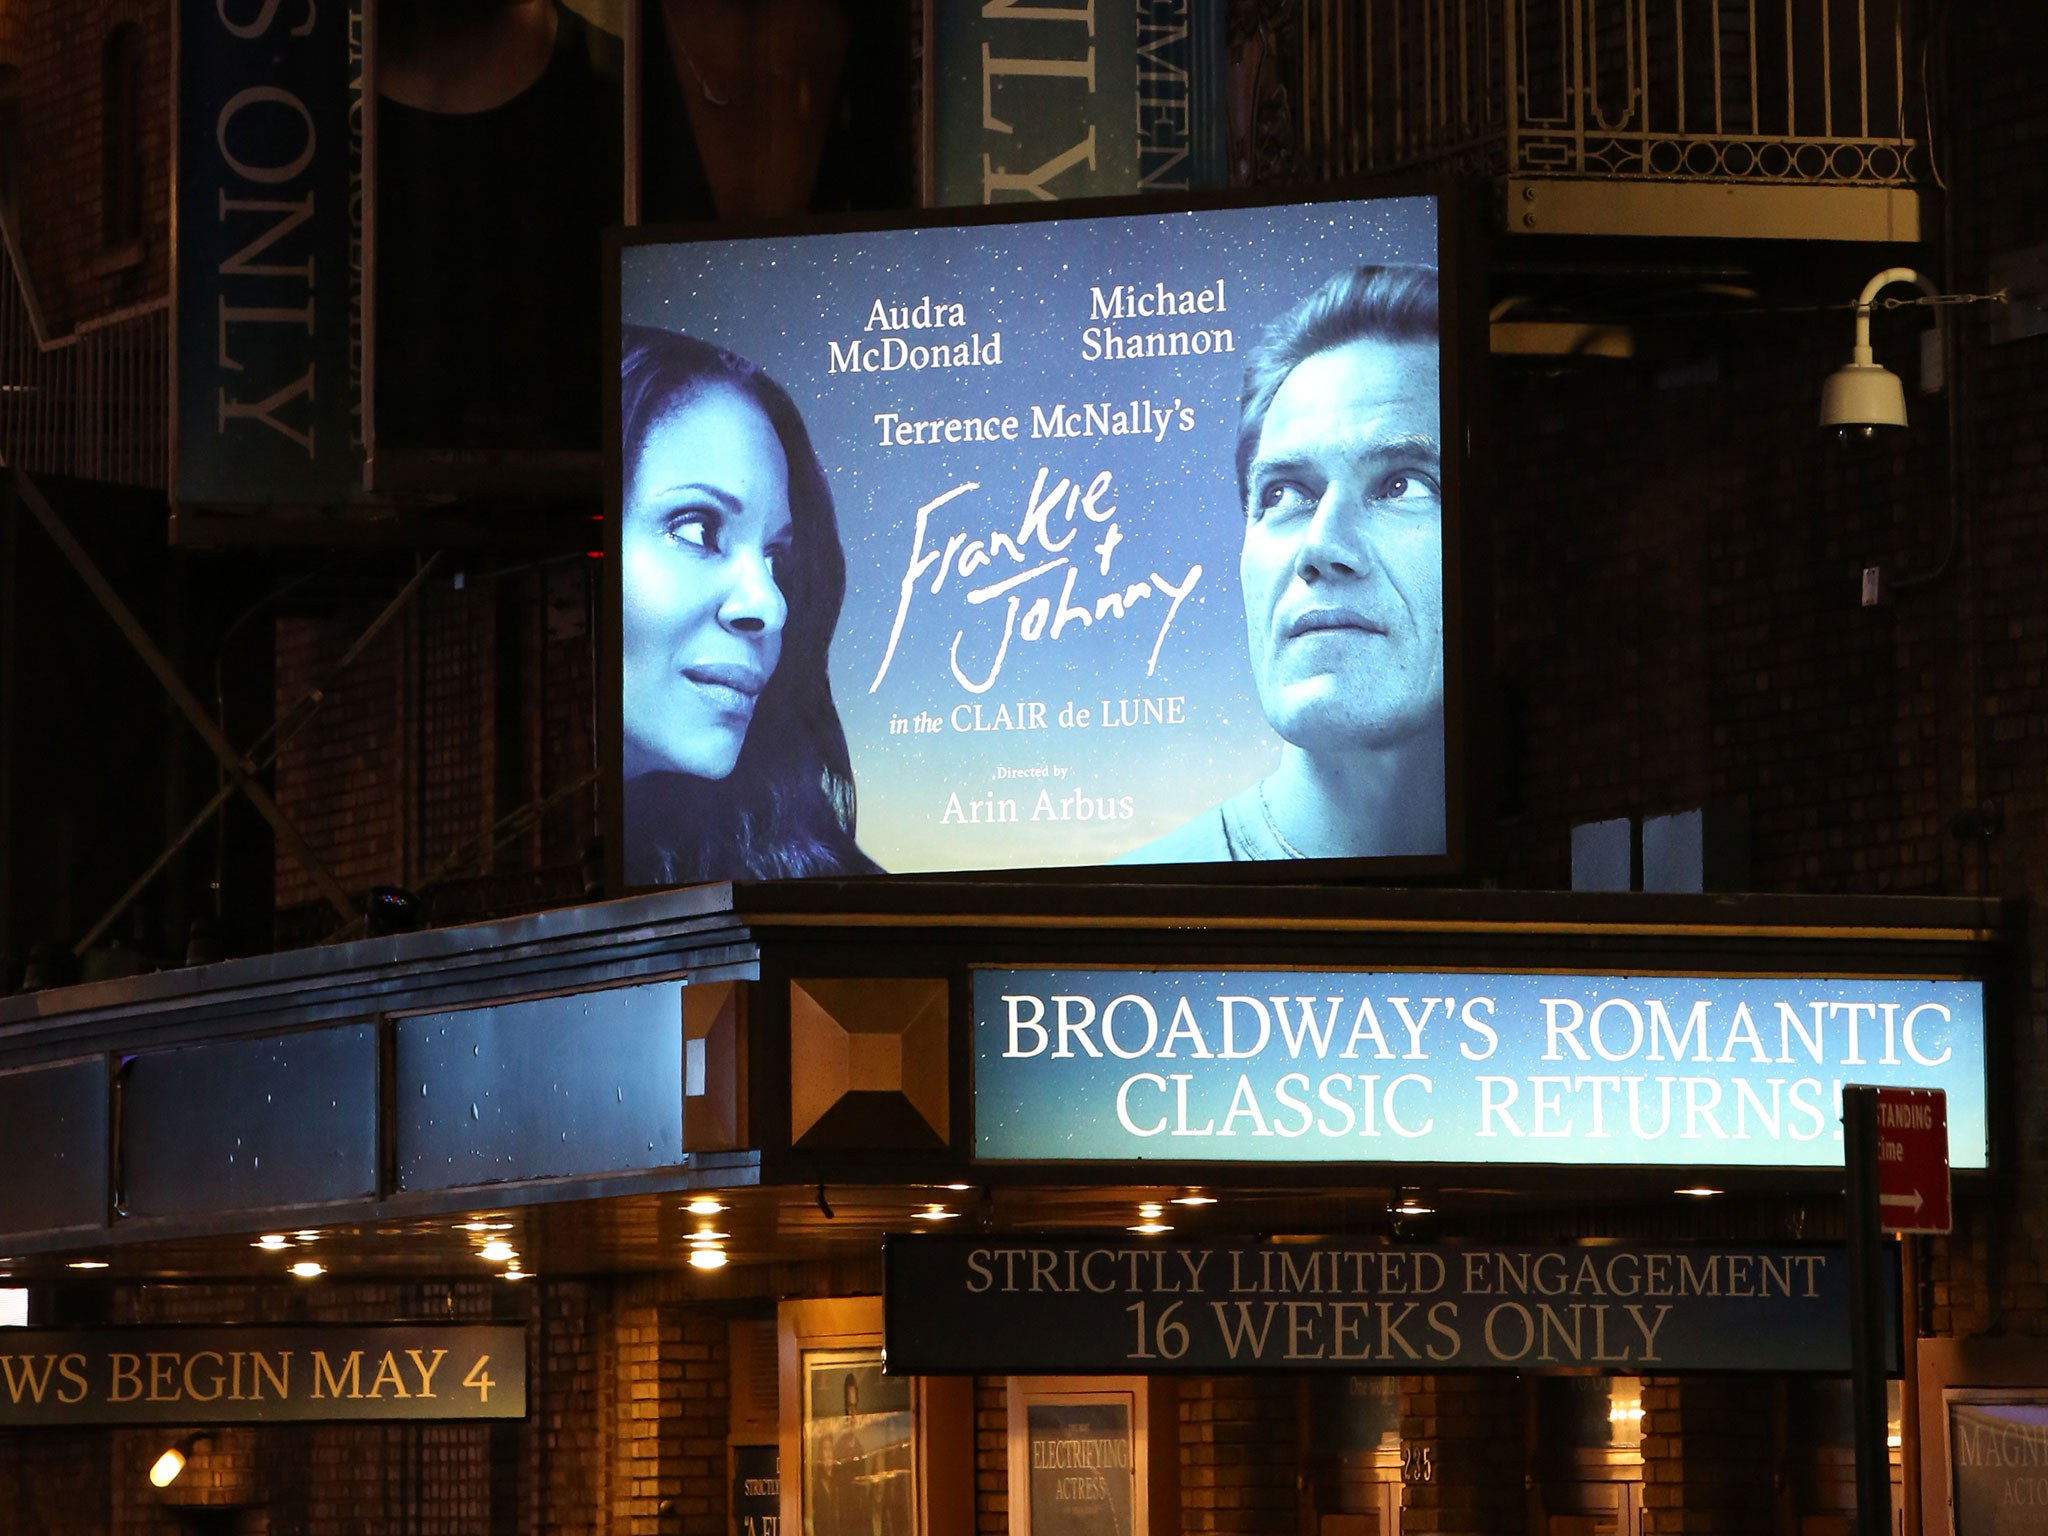 Frankie and Johnny Marquee at the Broadhurst Theatre